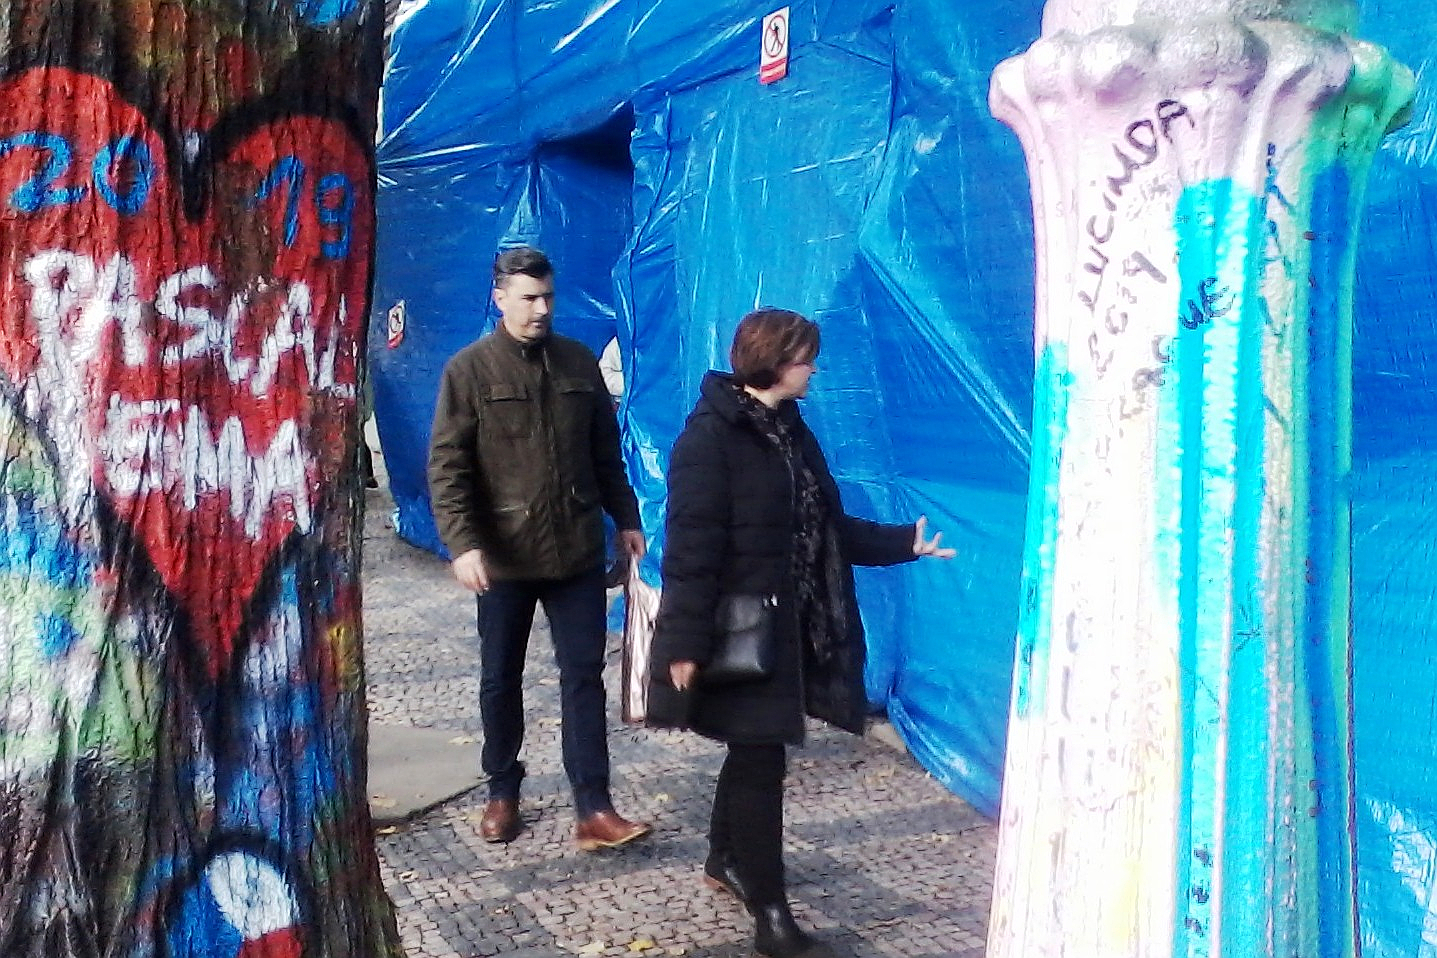 Prague's famous Lennon Wall undergoing transformation | Radio Prague International